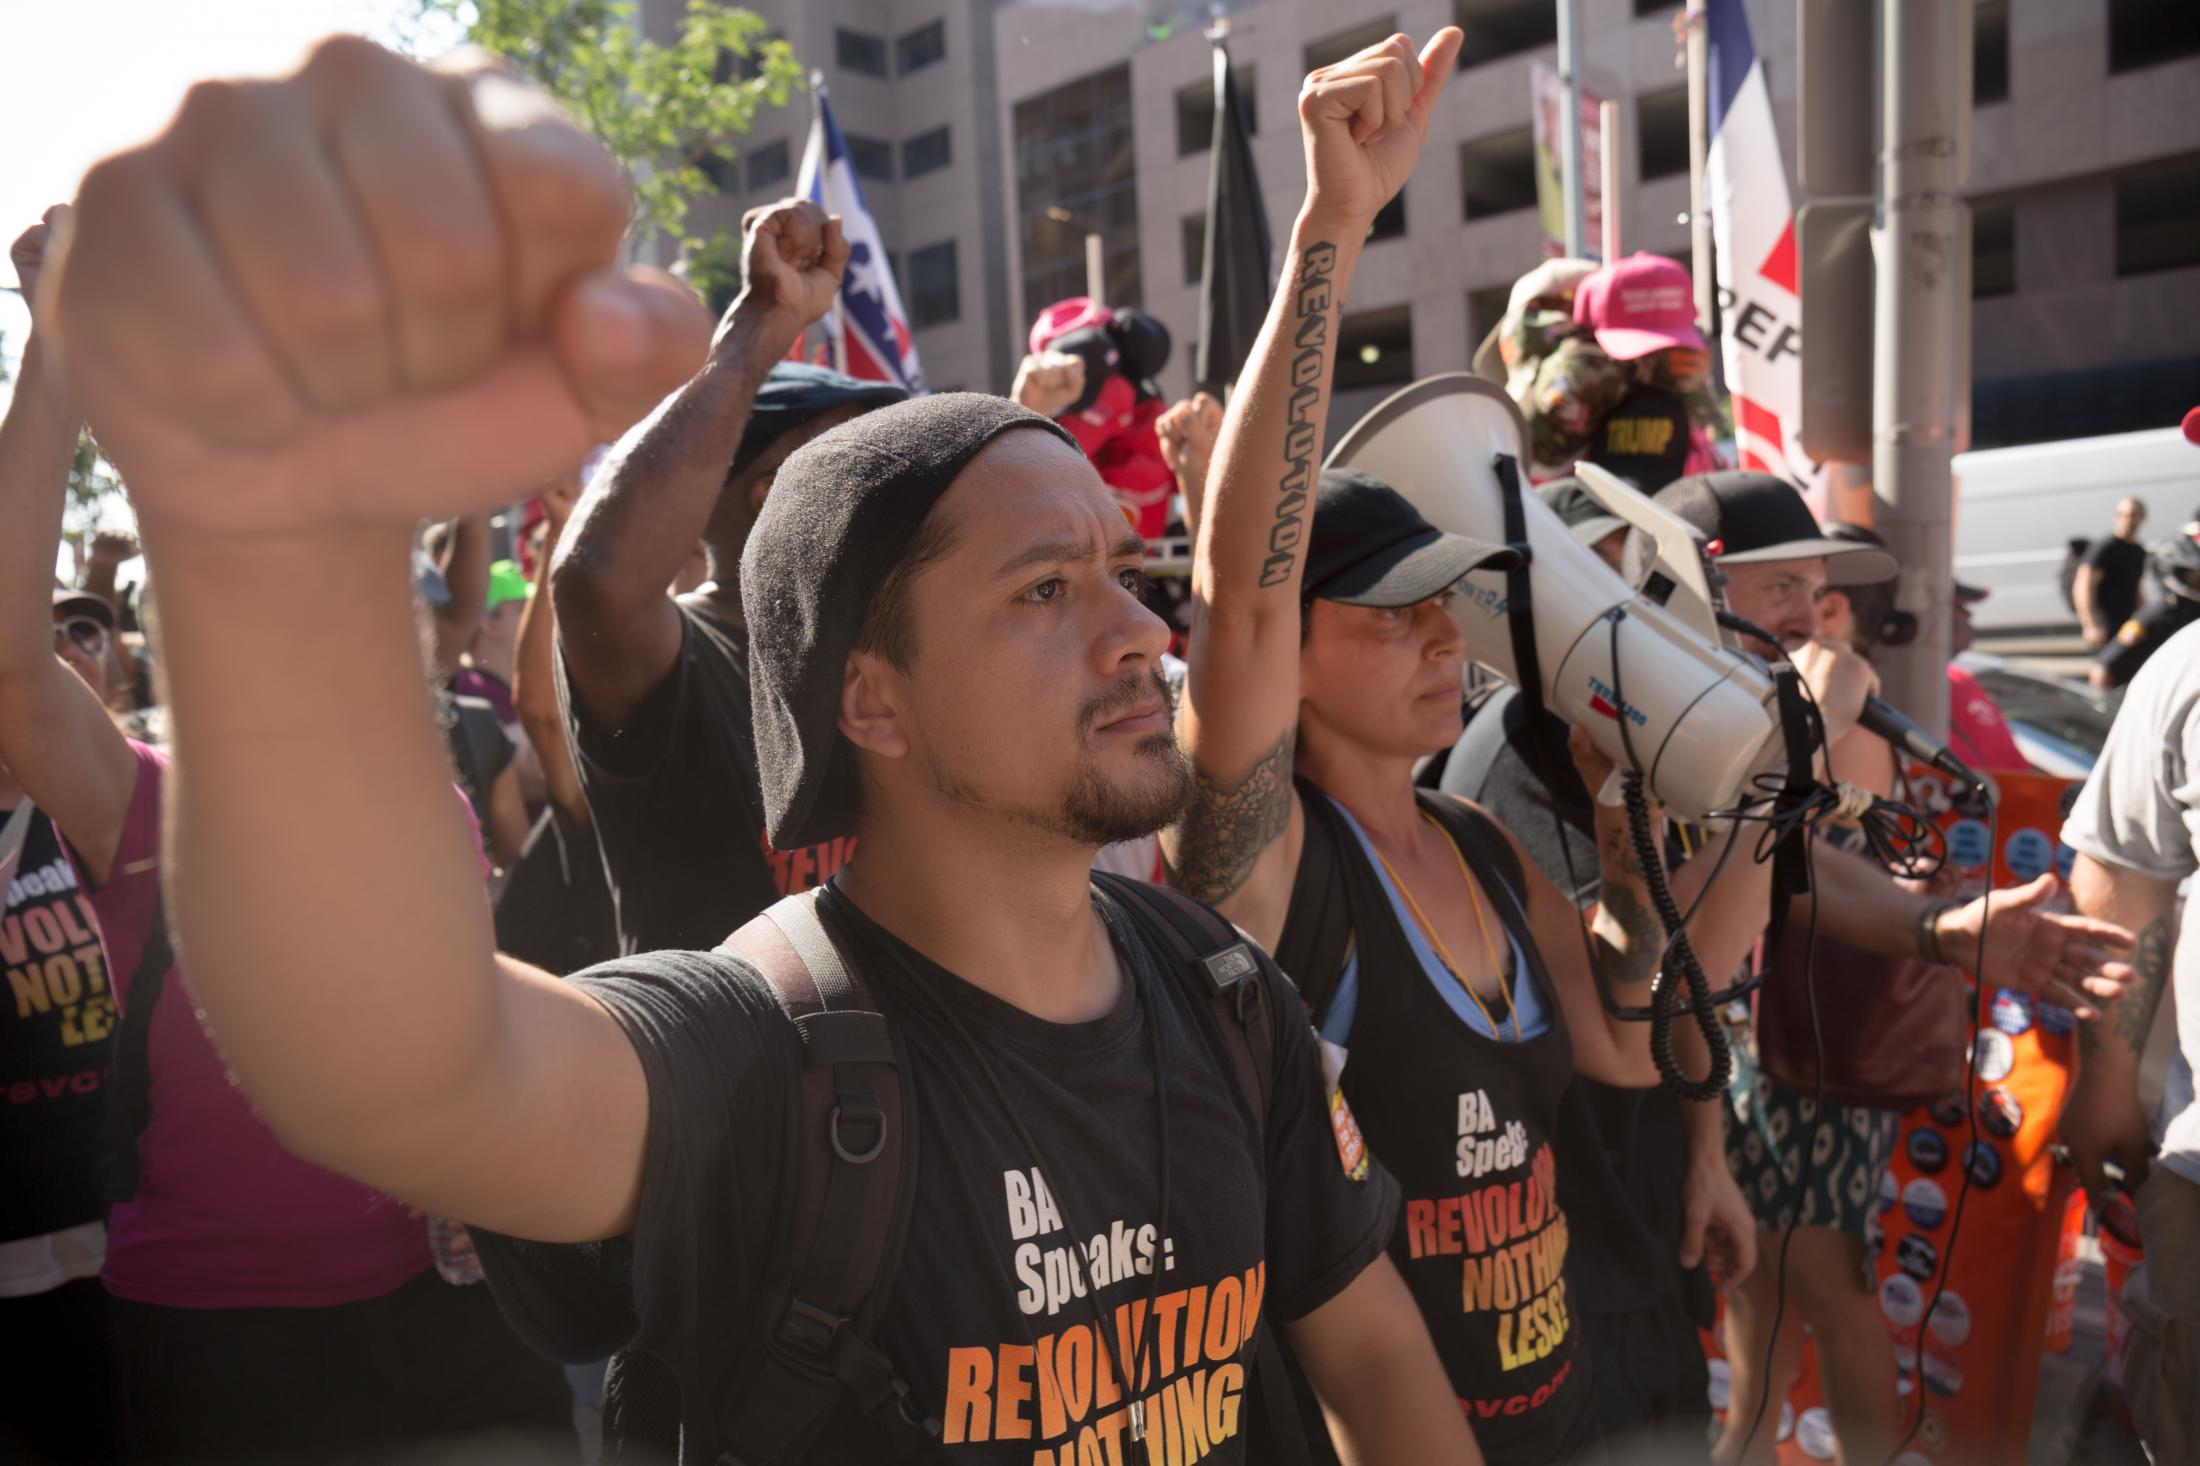 Members of the Revolutionary Communists lead a march against the Republican Party in Cleveland, Ohio during the Republican National Convention on July 19, 2016.